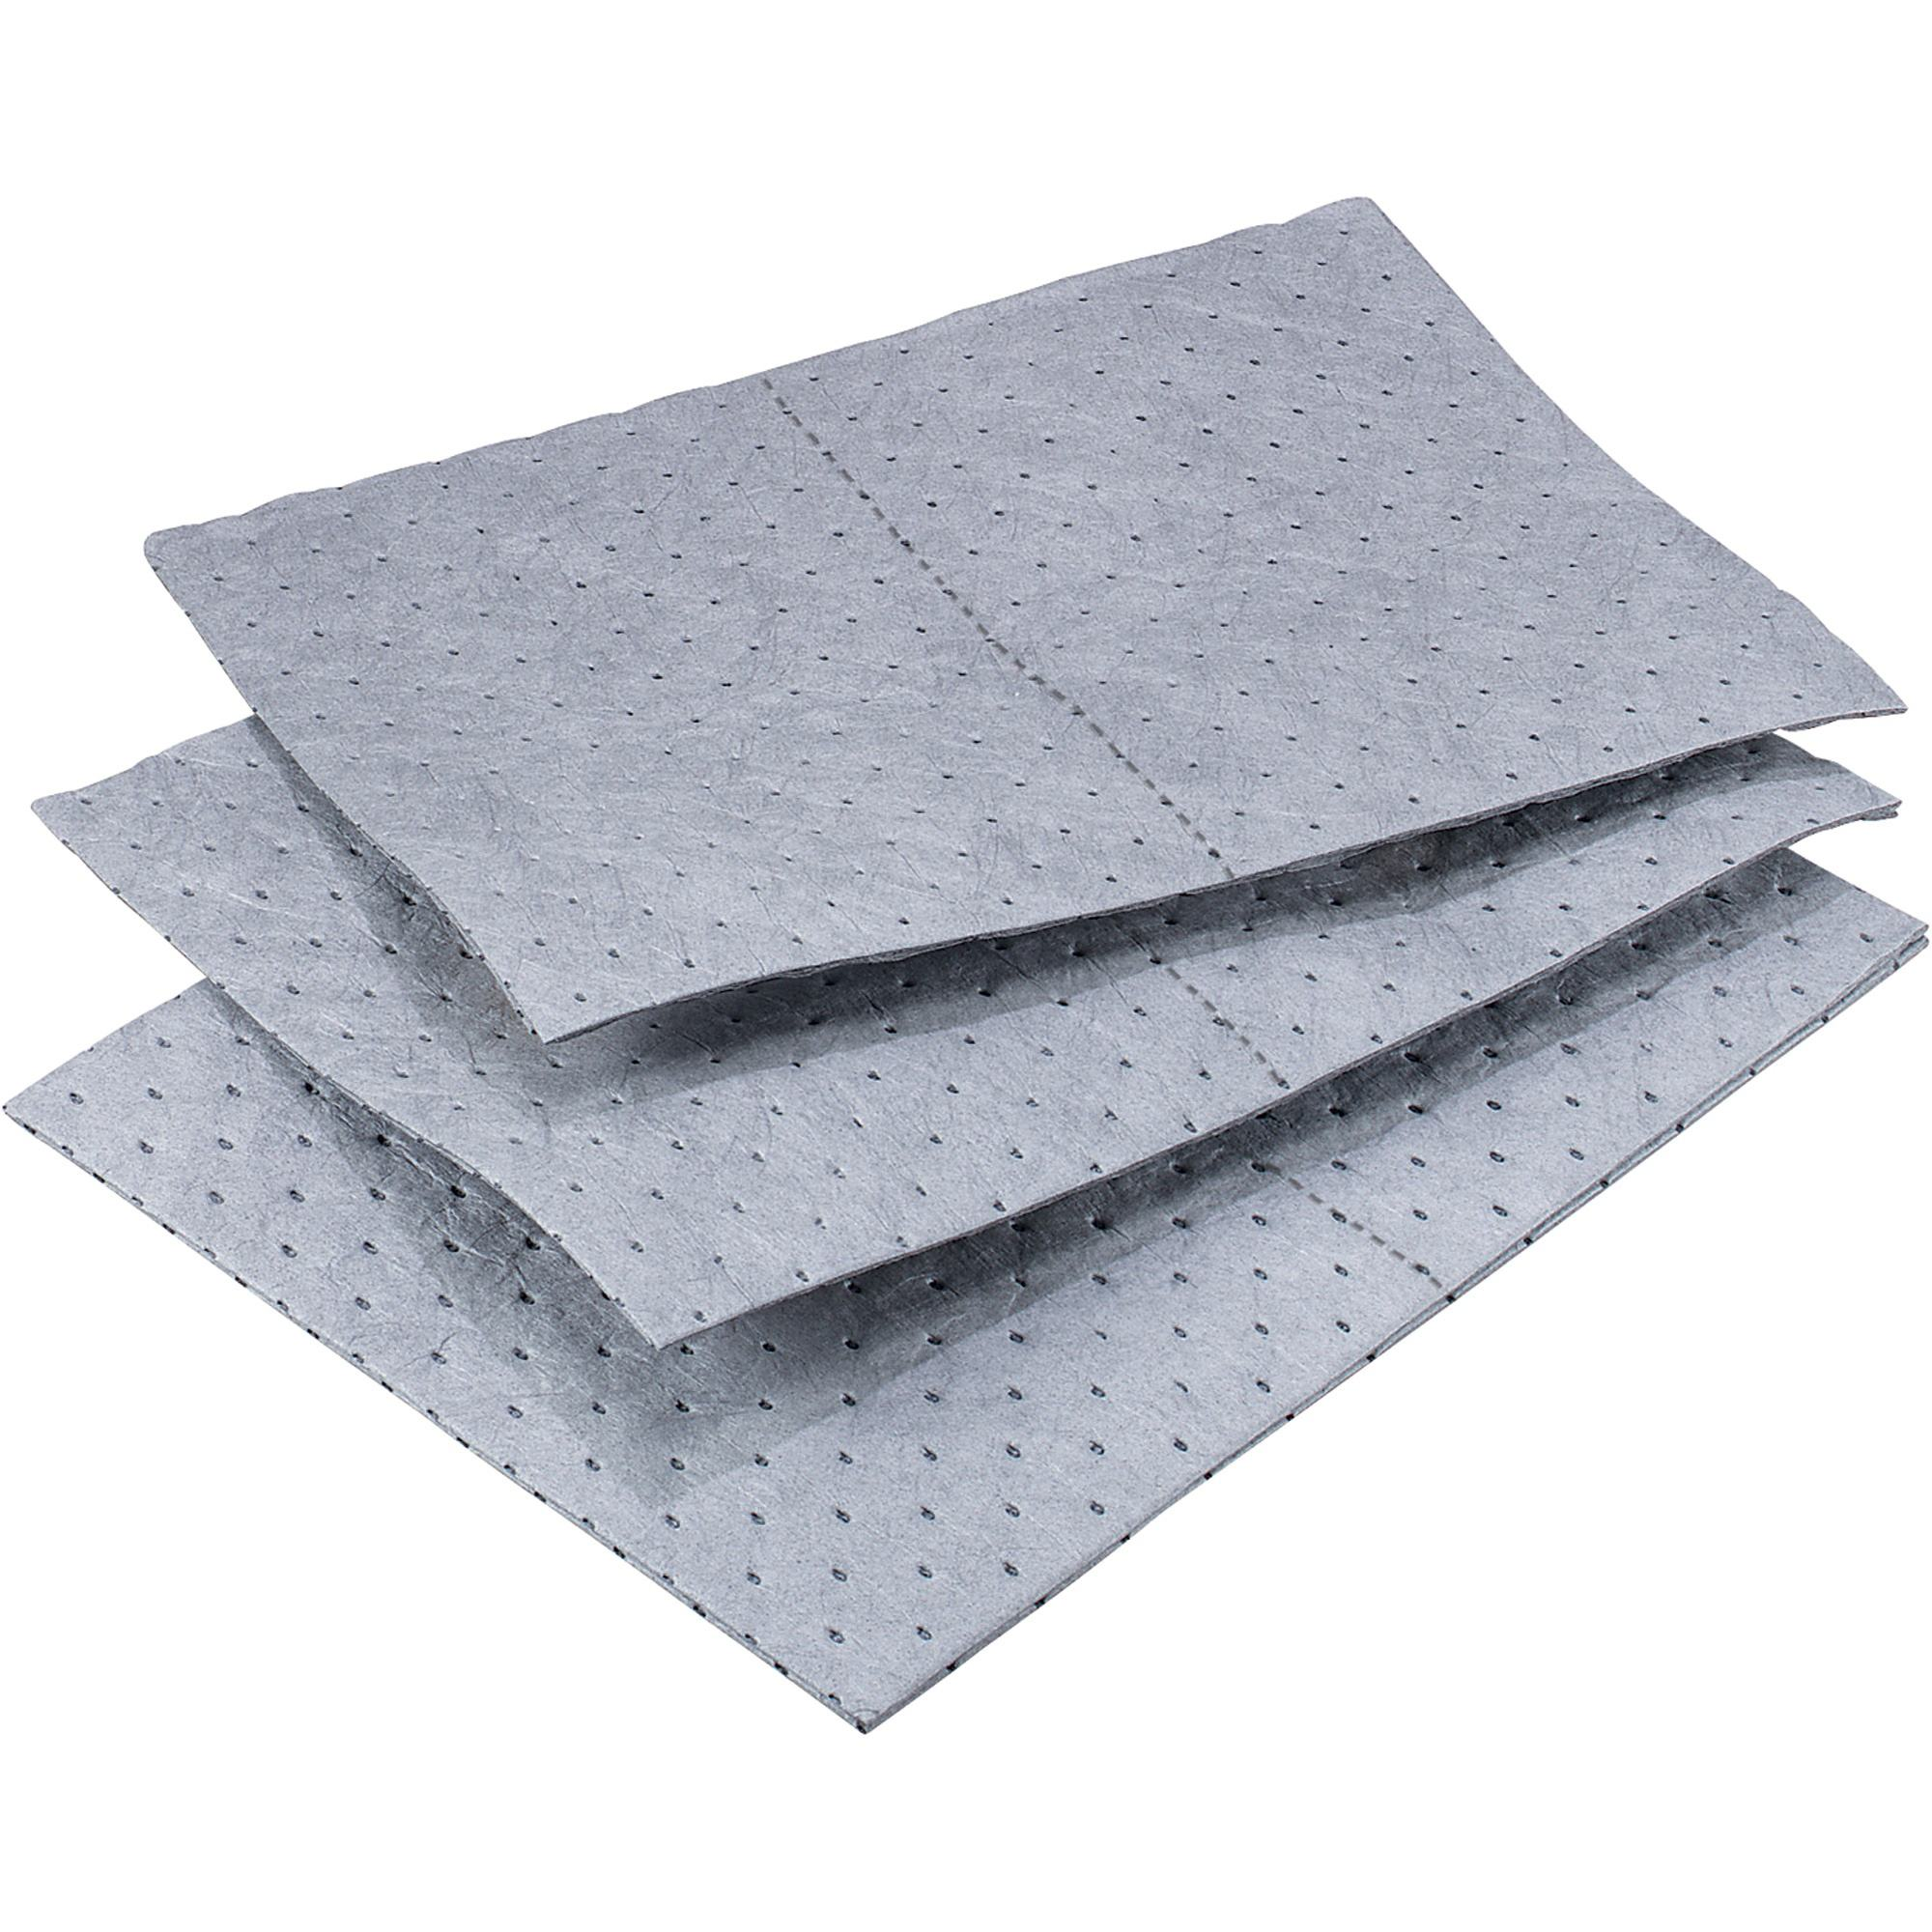 Oil And Liquid universal absorbent pads